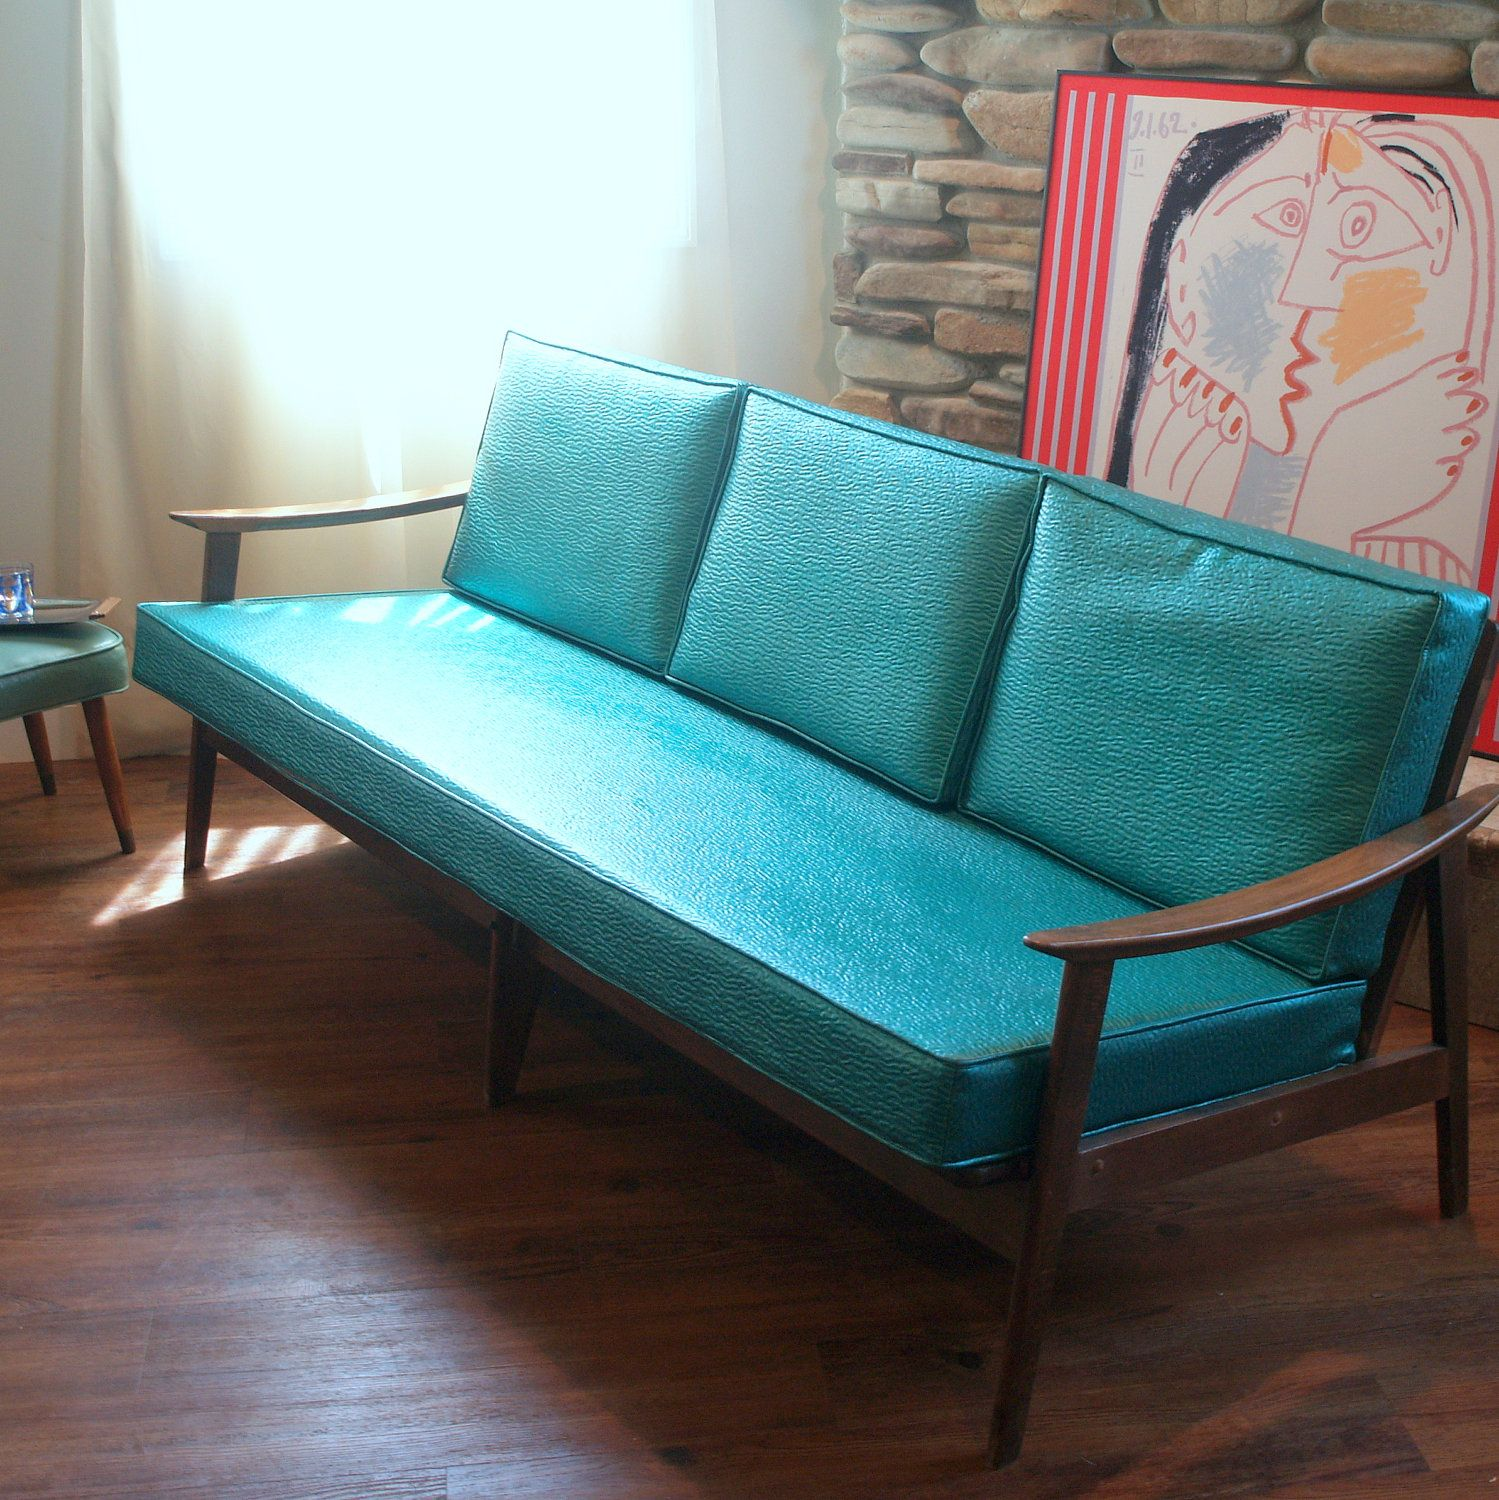 Vintage Danish Modern Sofa Lovely 1950 S Mid Century Modern Furniture Lounge Style Solid Wood Teal And Walnut European Made Chicago Listing Mid Century Modern Furniture Danish Modern Sofa Mid Century Modern